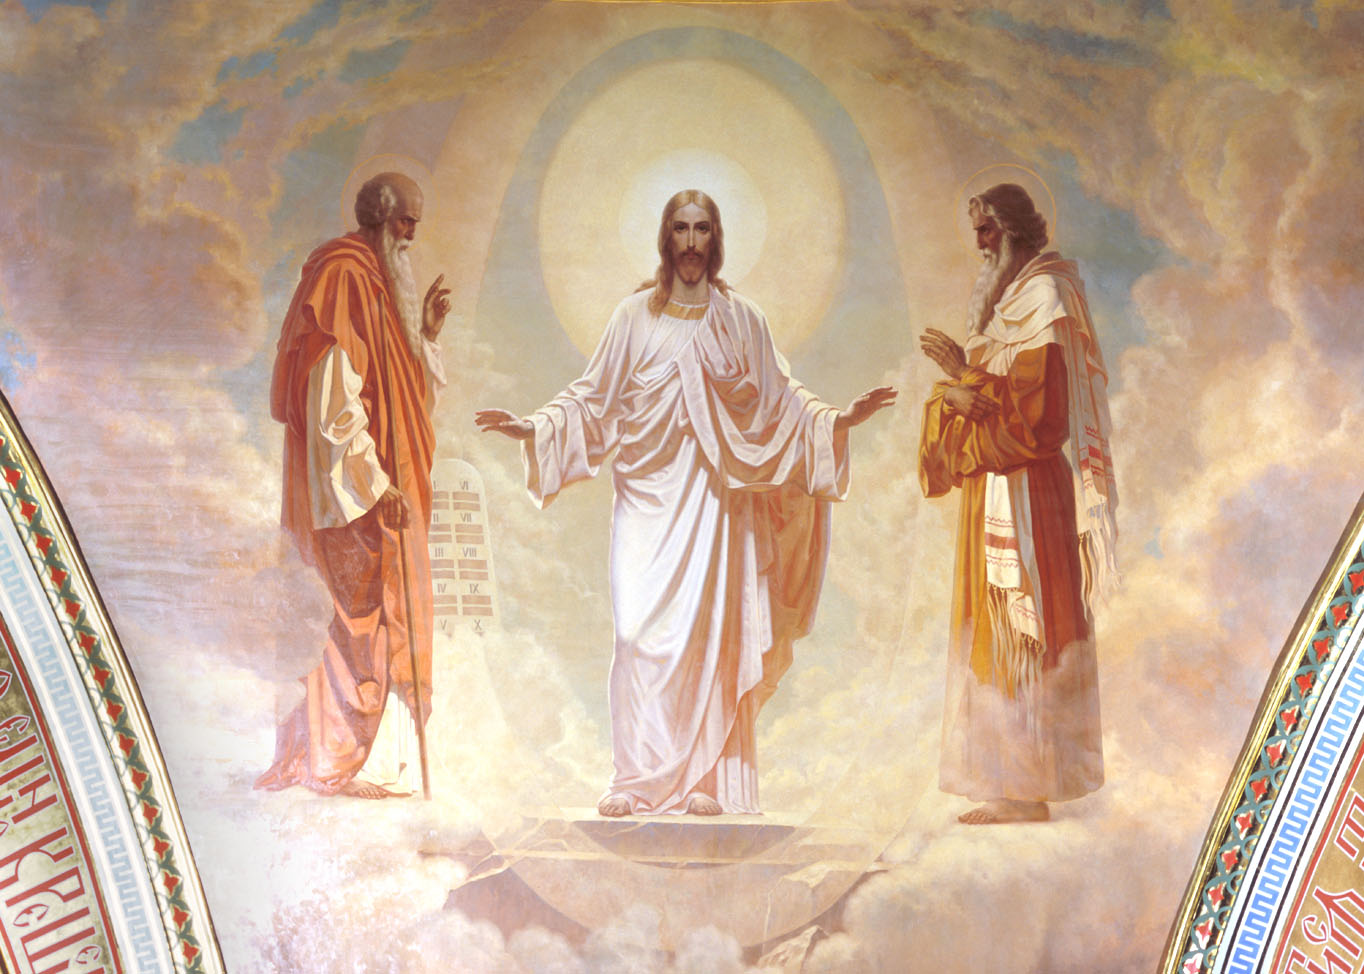 THE HOLY TRANSFIGURATION OF OUR LORD, dans immagini sacre Preobrawenie